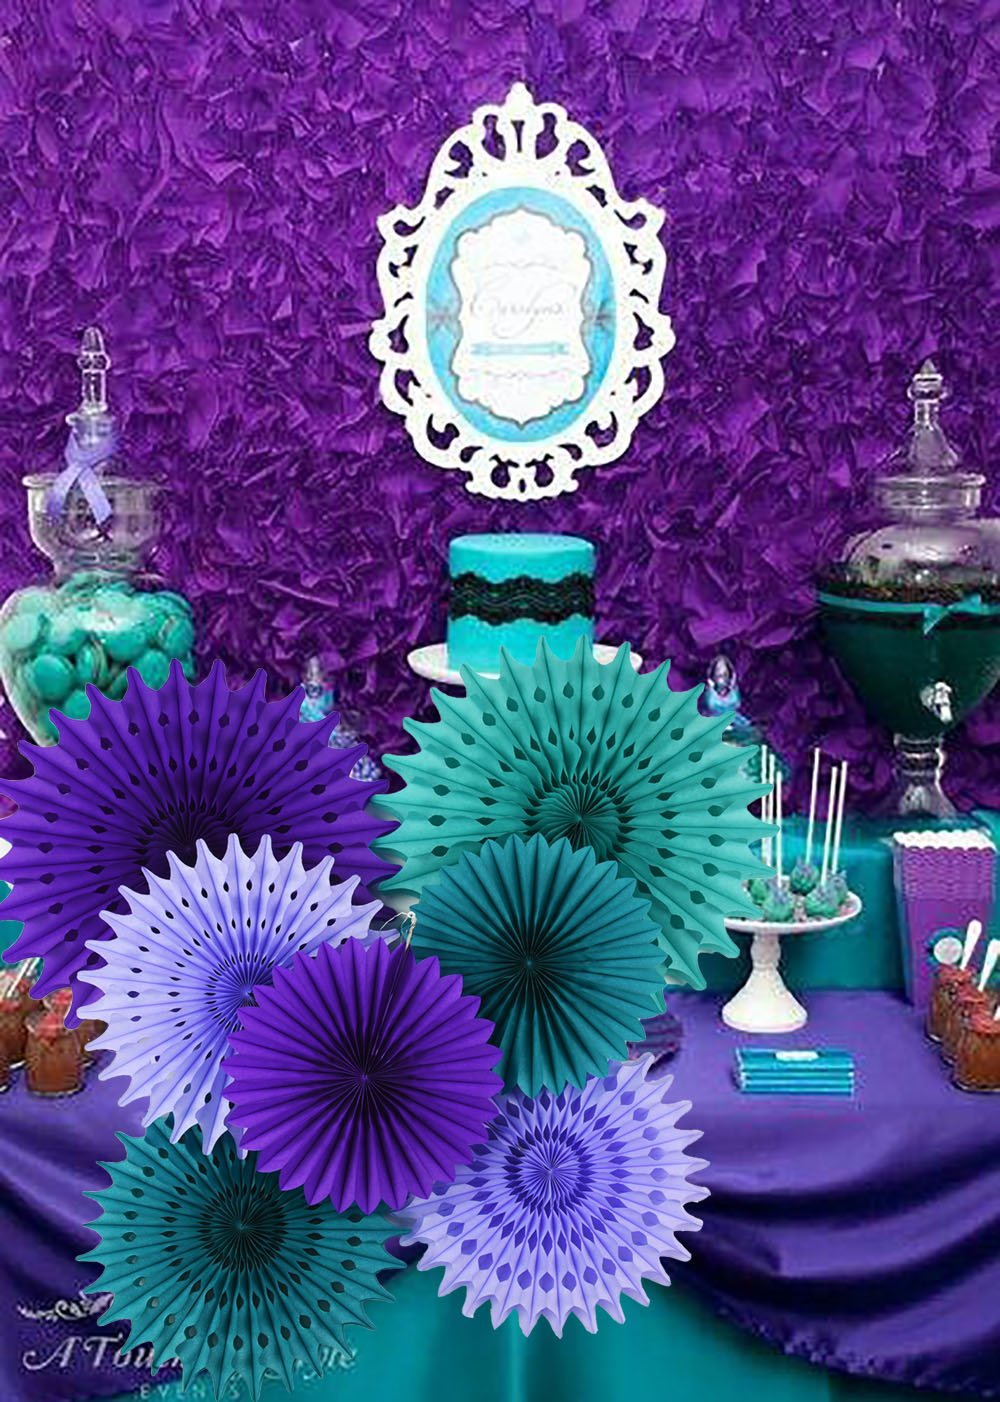 Details About Mermaid Birthday Party Supplies Under The Sea Party Supplies Teal Purple